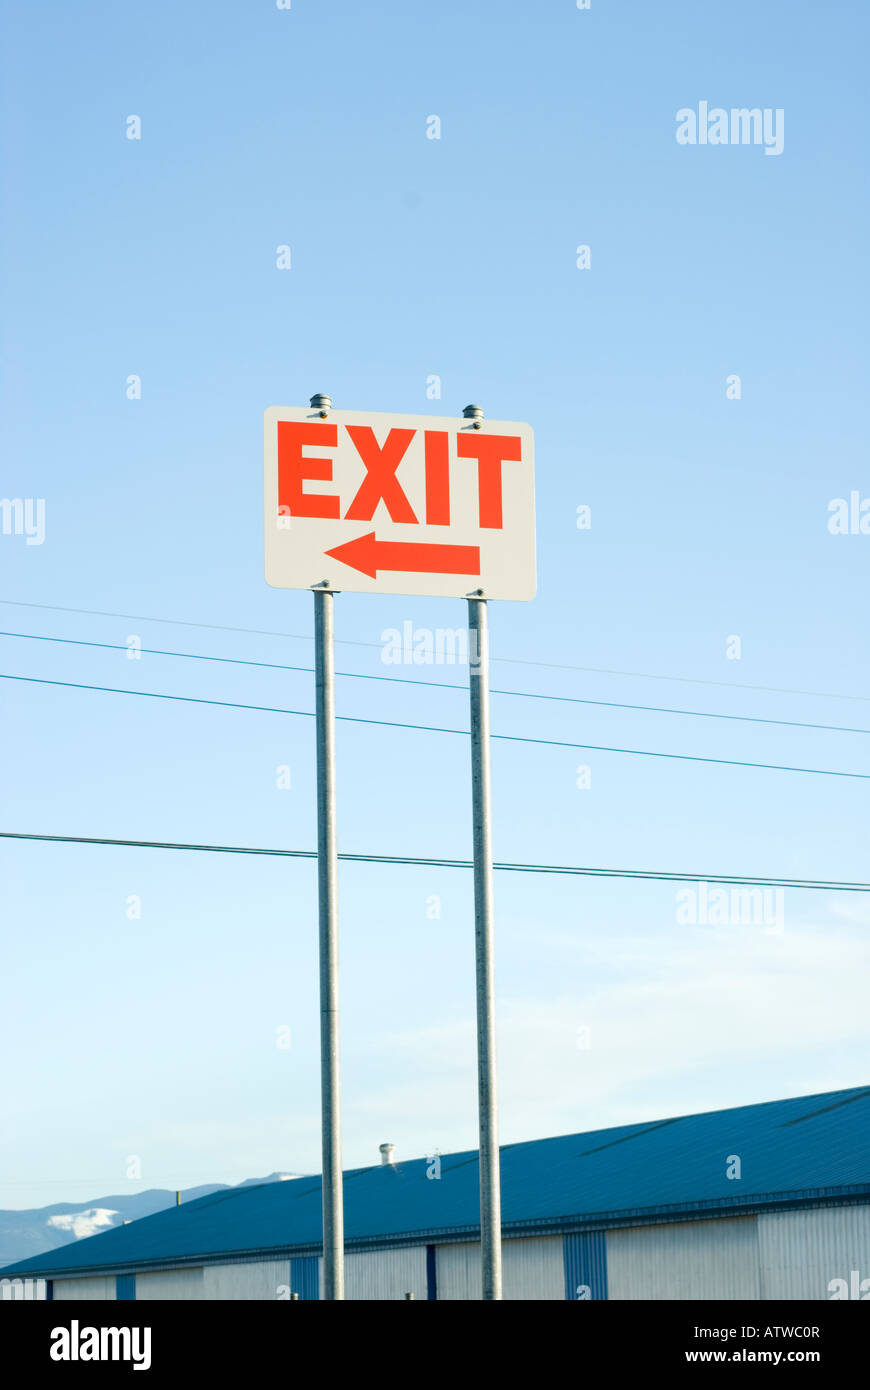 Parking lot exit sign with arrow against a blue sky - Stock Image